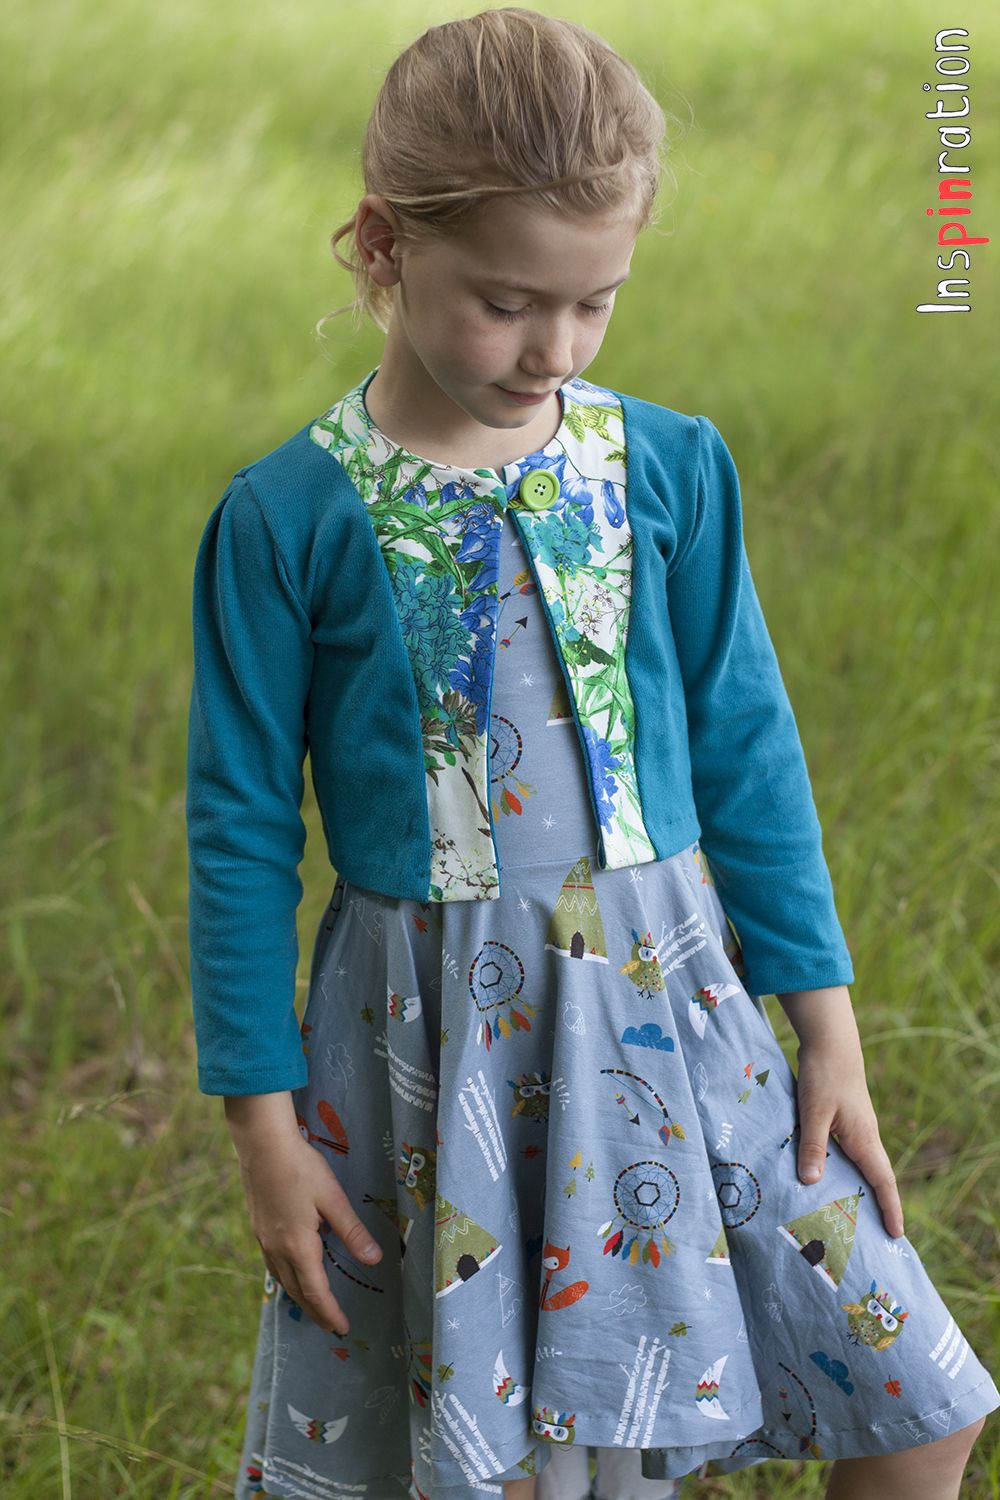 Aura bolero sewing pattern aura bolero pinterest auras nederlandsenglish today sofilantjes has released not one but two patterns this time a dress and a bolero jeuxipadfo Image collections